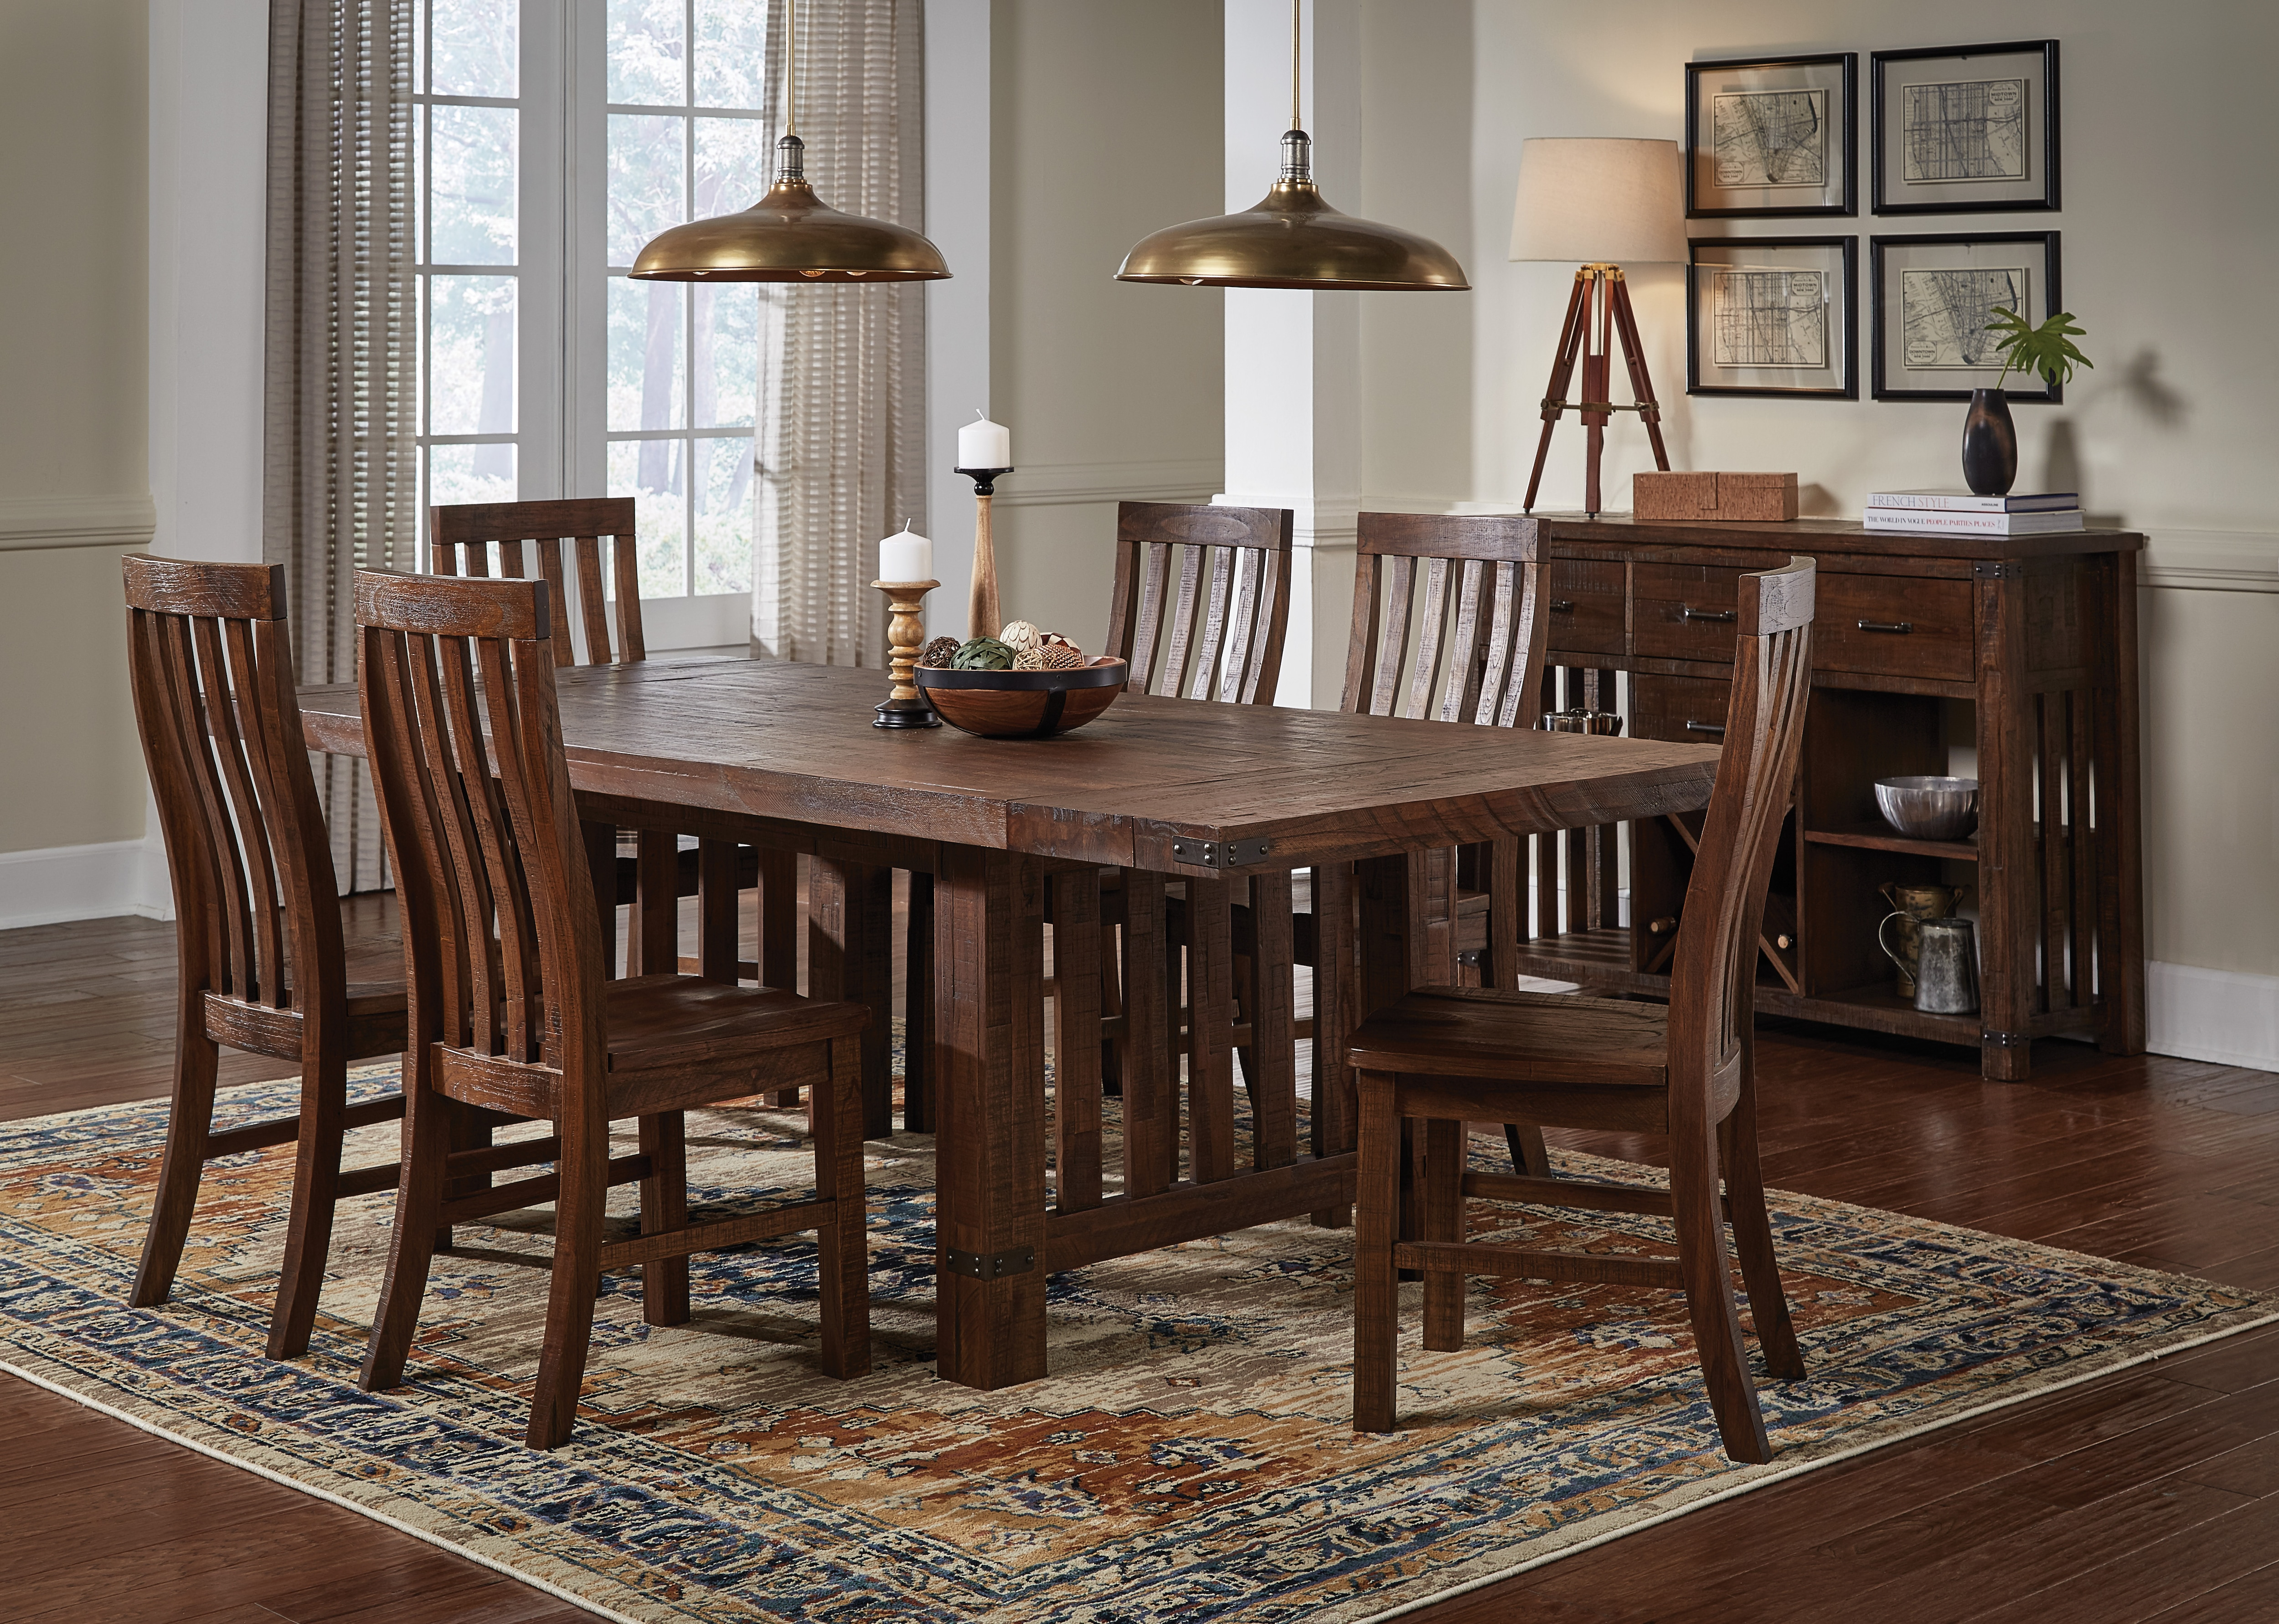 The Everett Dining Collection